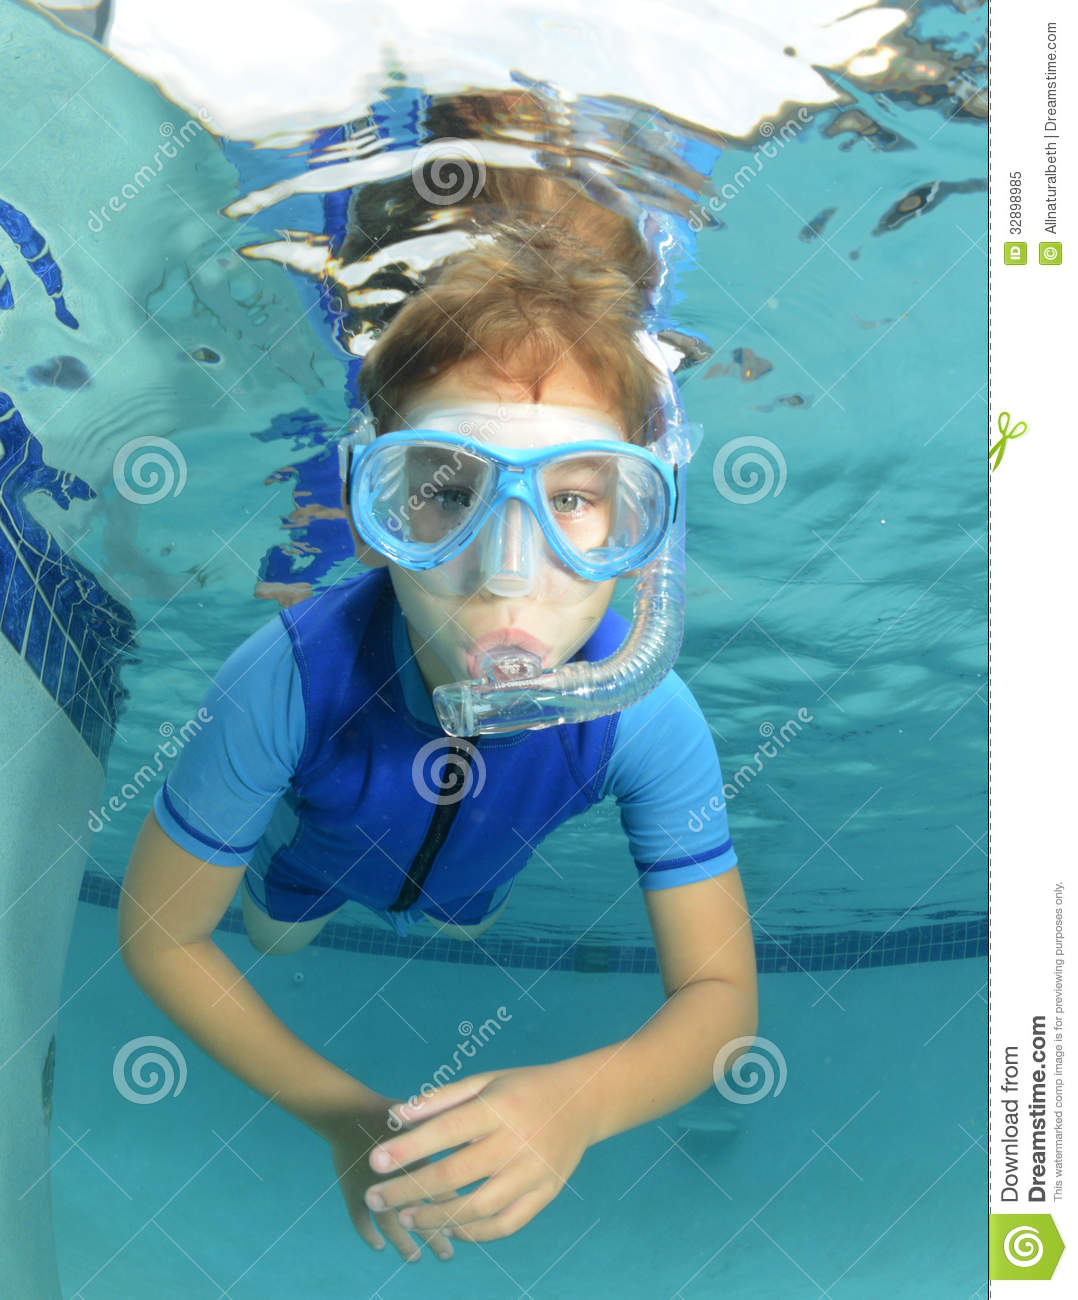 Kid Underwater In Pool Stock Image Image Of Action Leisure 32898985